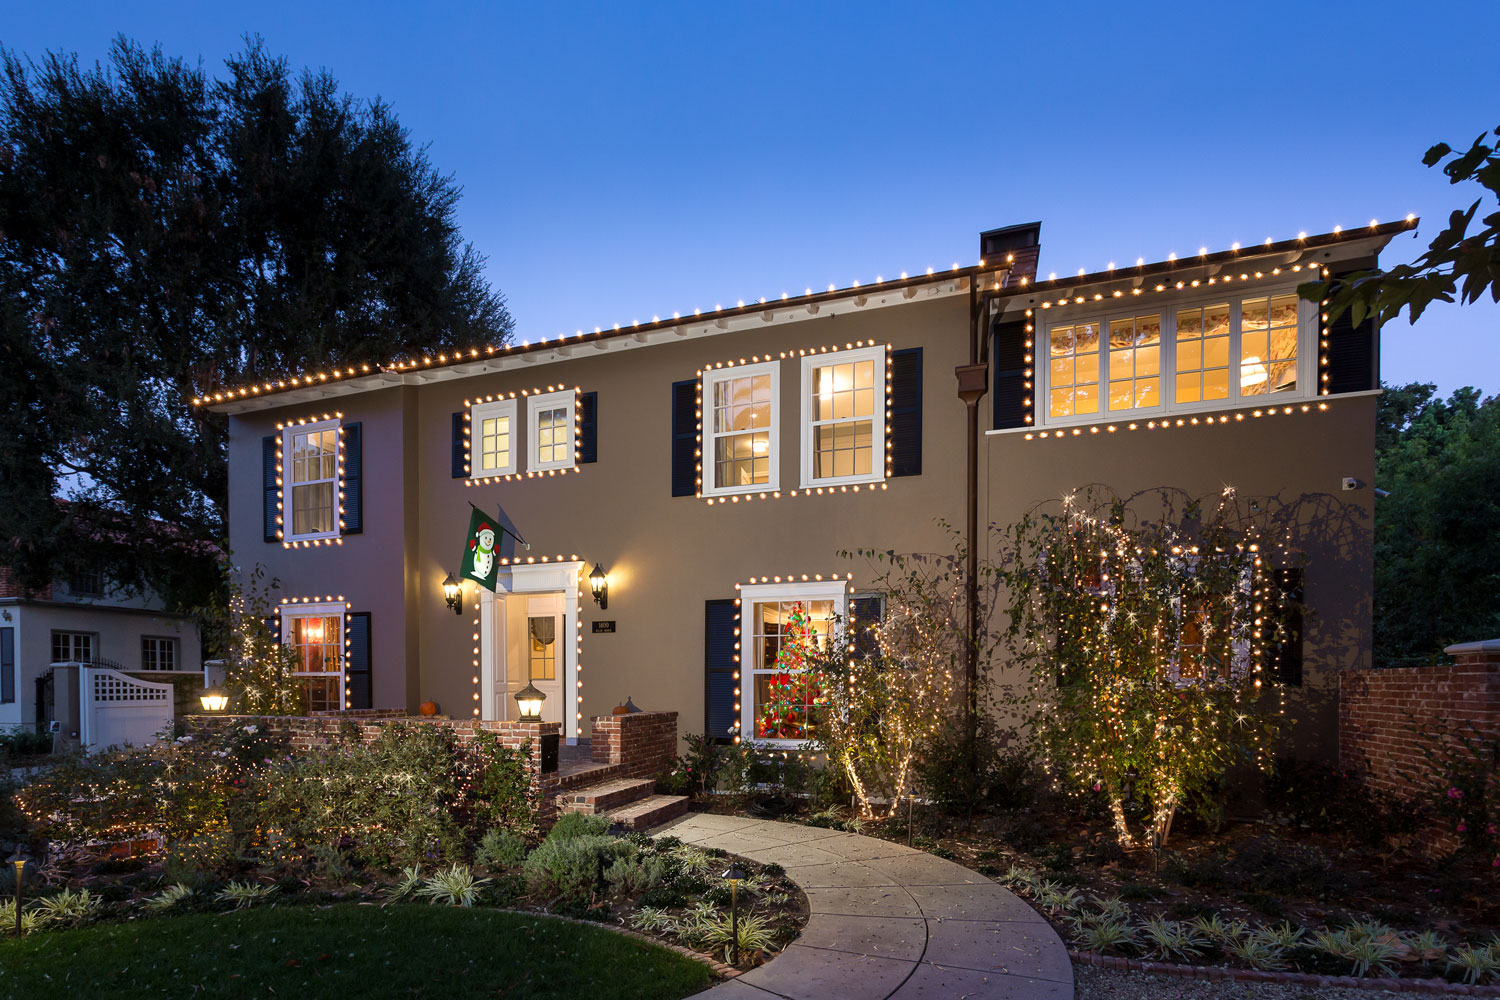 Traditional-exterior-Chelsea-curbappeal.jpg